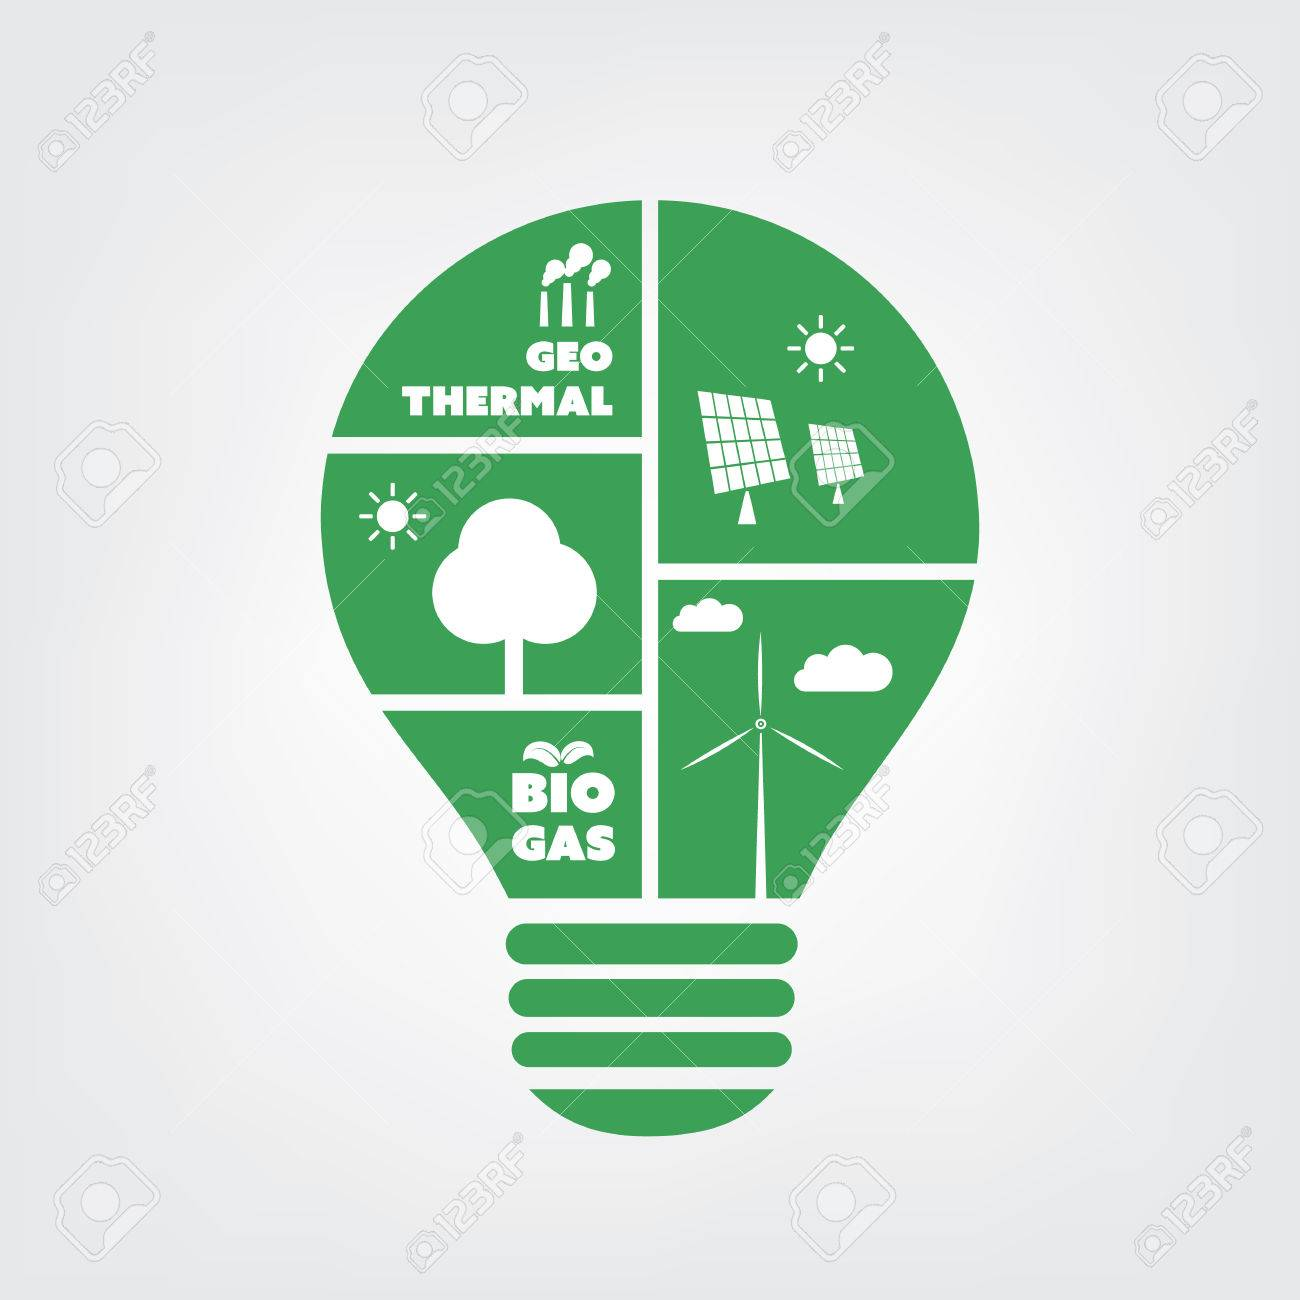 Think Green   Eco Friendly Ideas In A Light Bulb   Symbol, Background  Concept Design